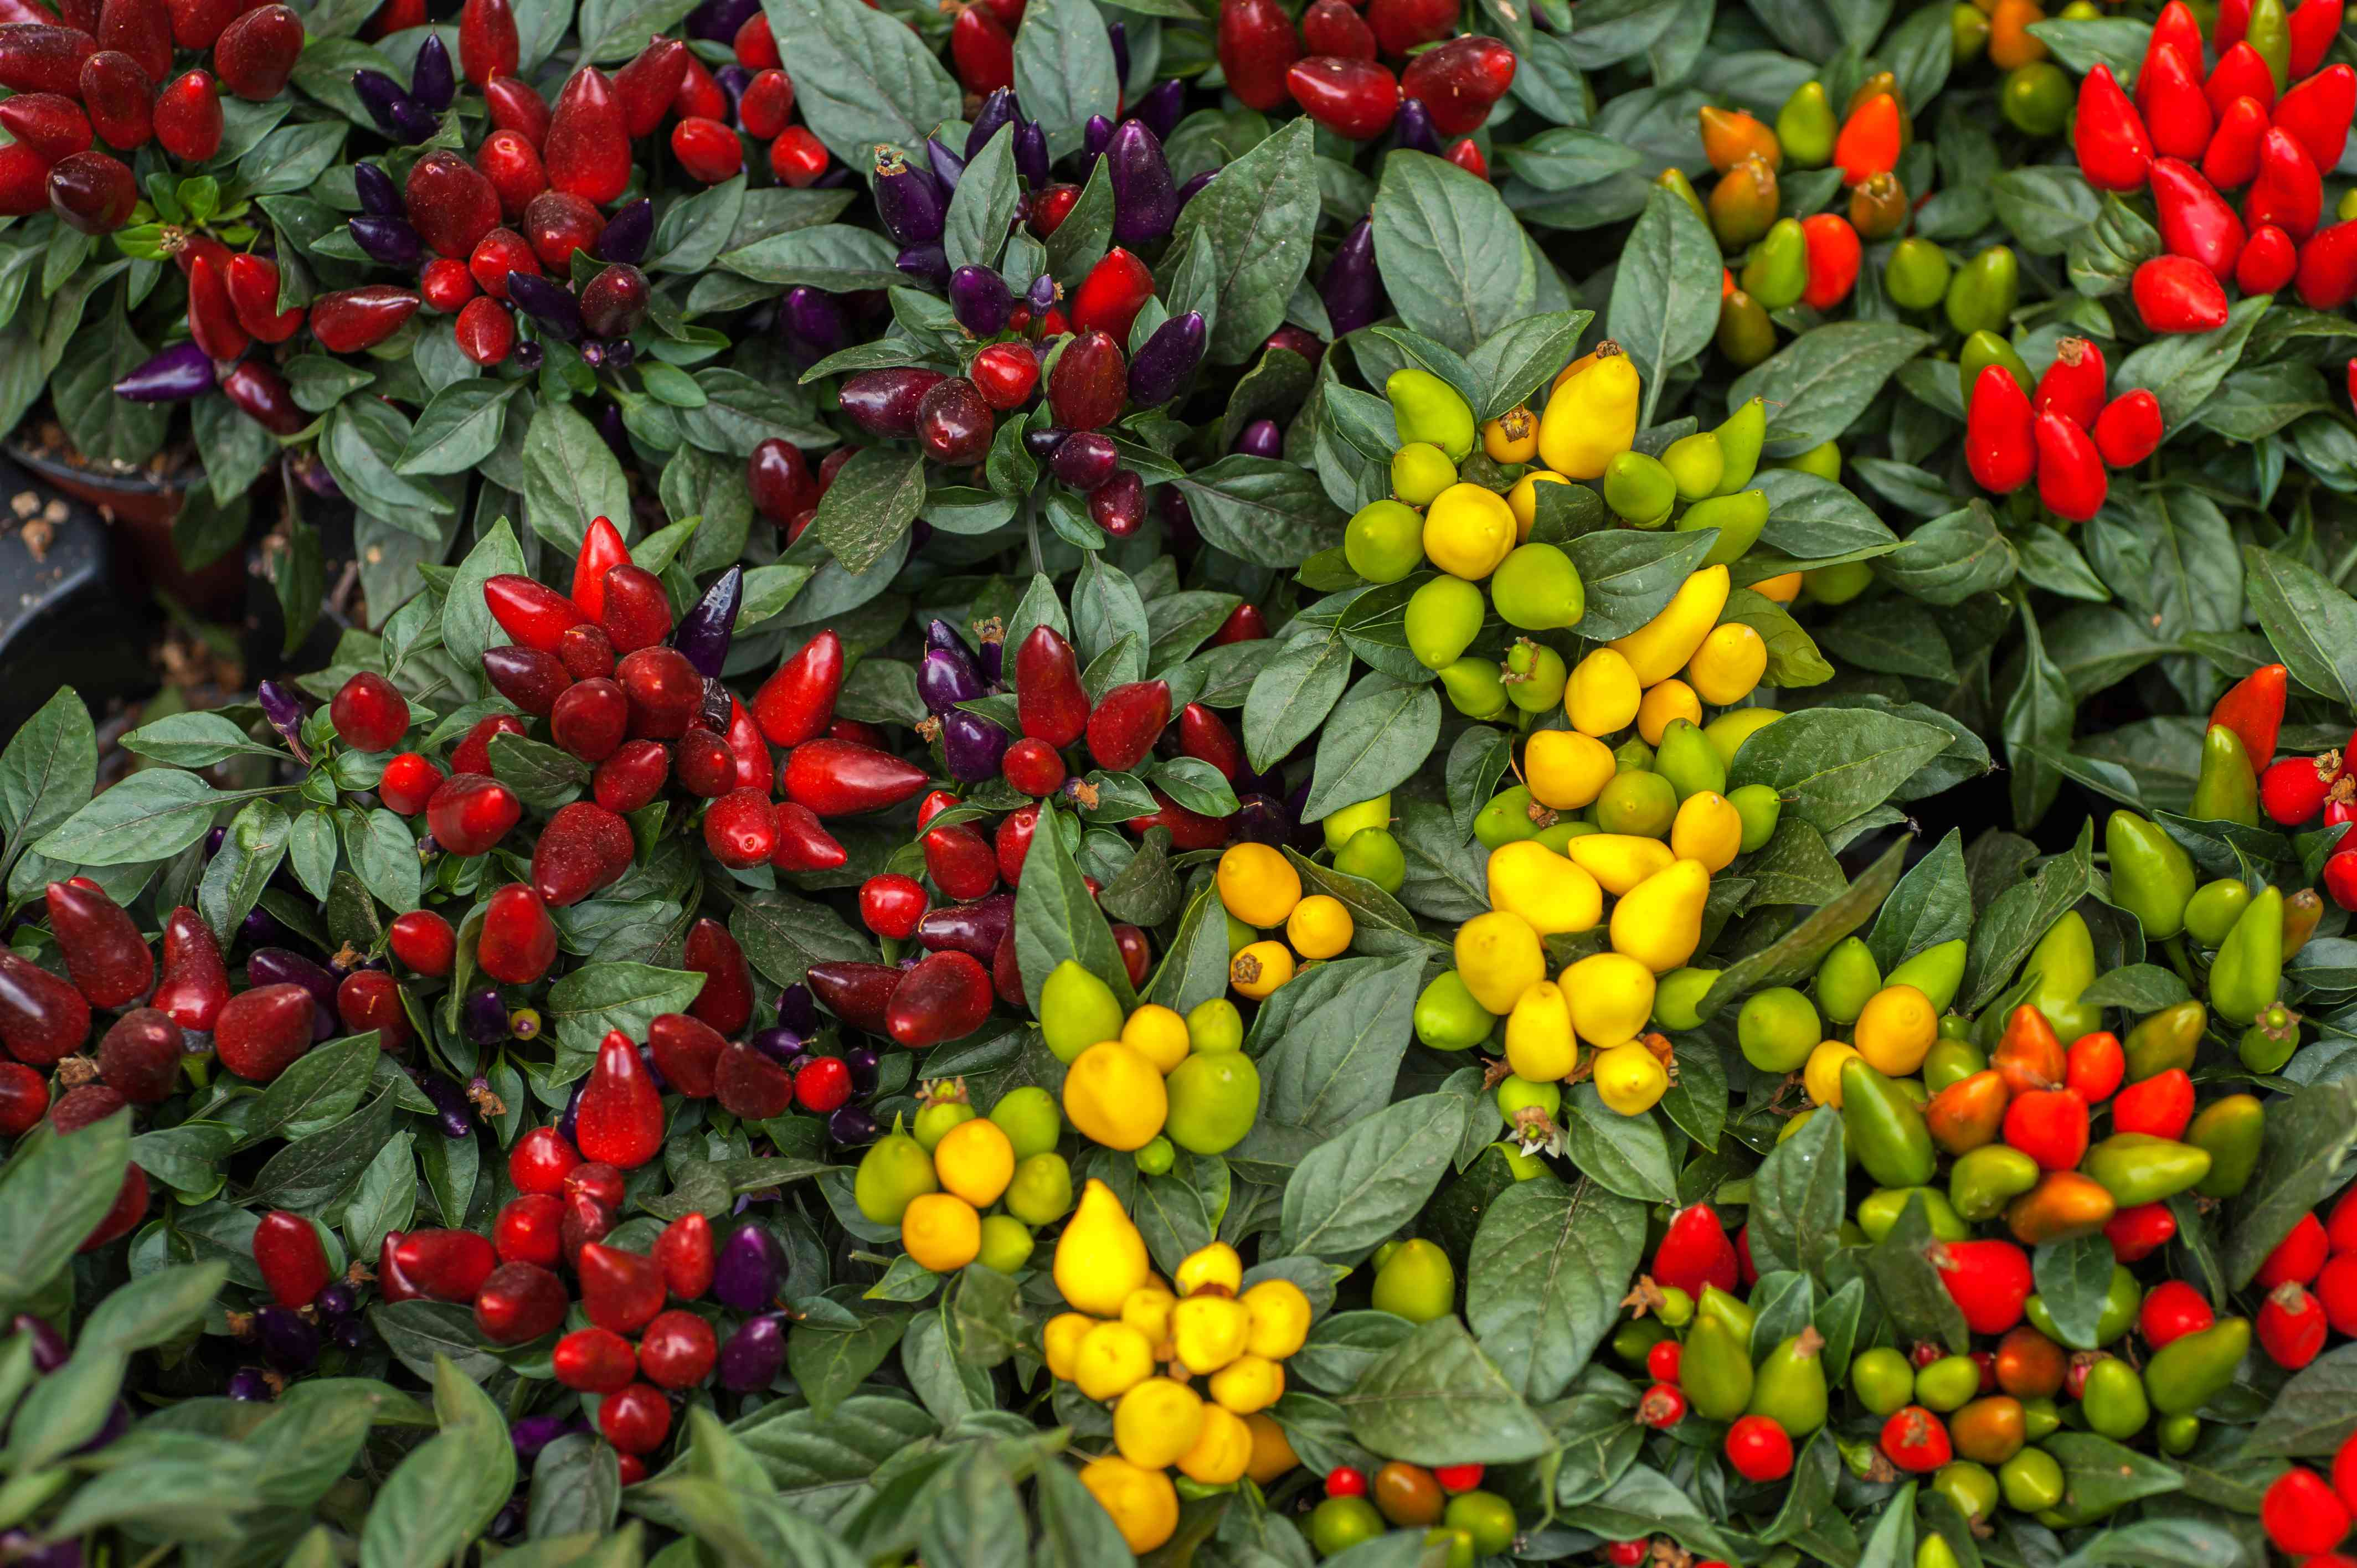 Ornamental pepper plant with small clusters of deep red, yellow and green peppers